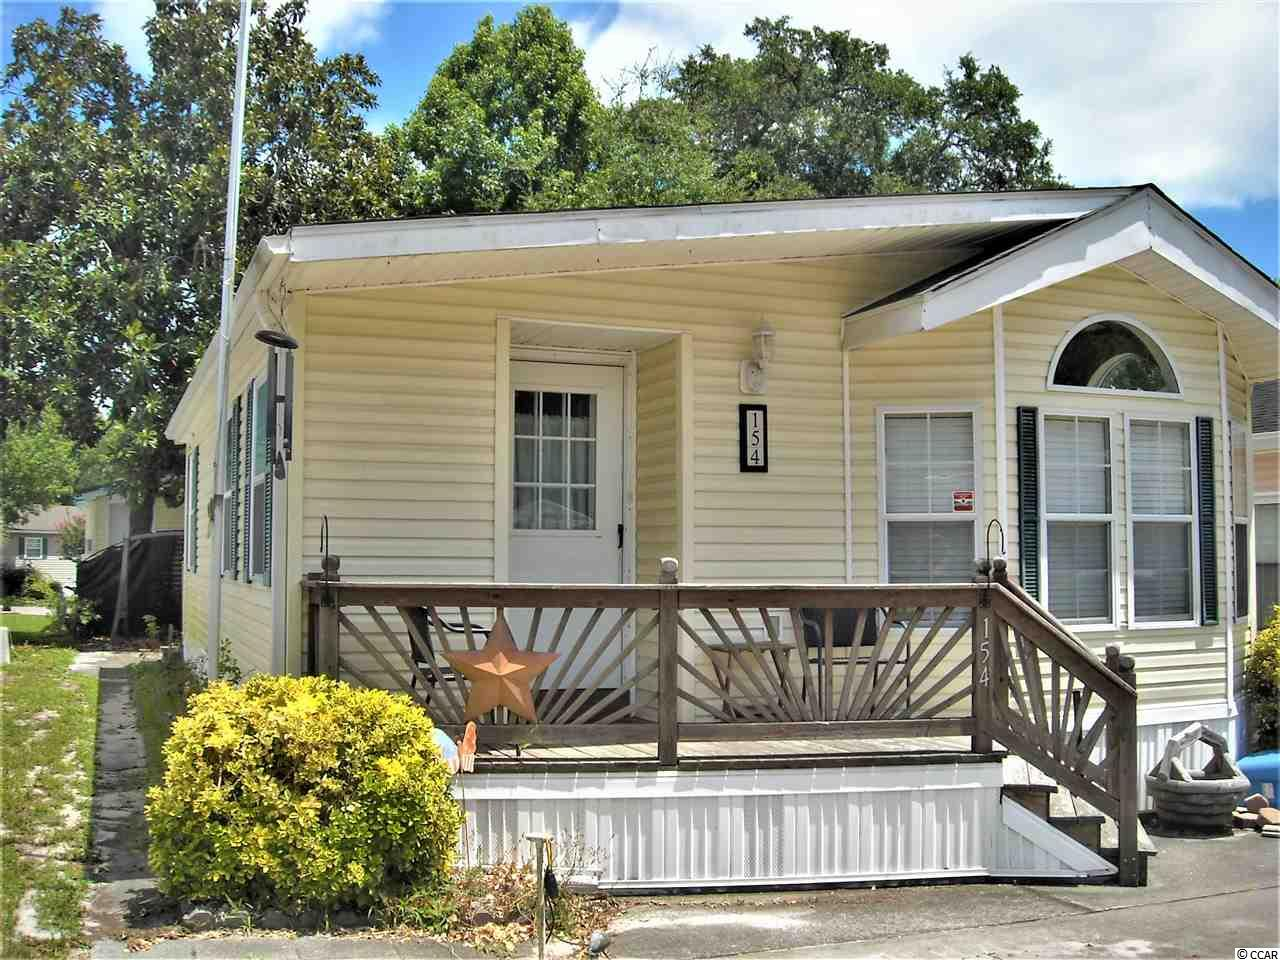 Myrtle Beach RV Resort house for sale in North Myrtle Beach, SC